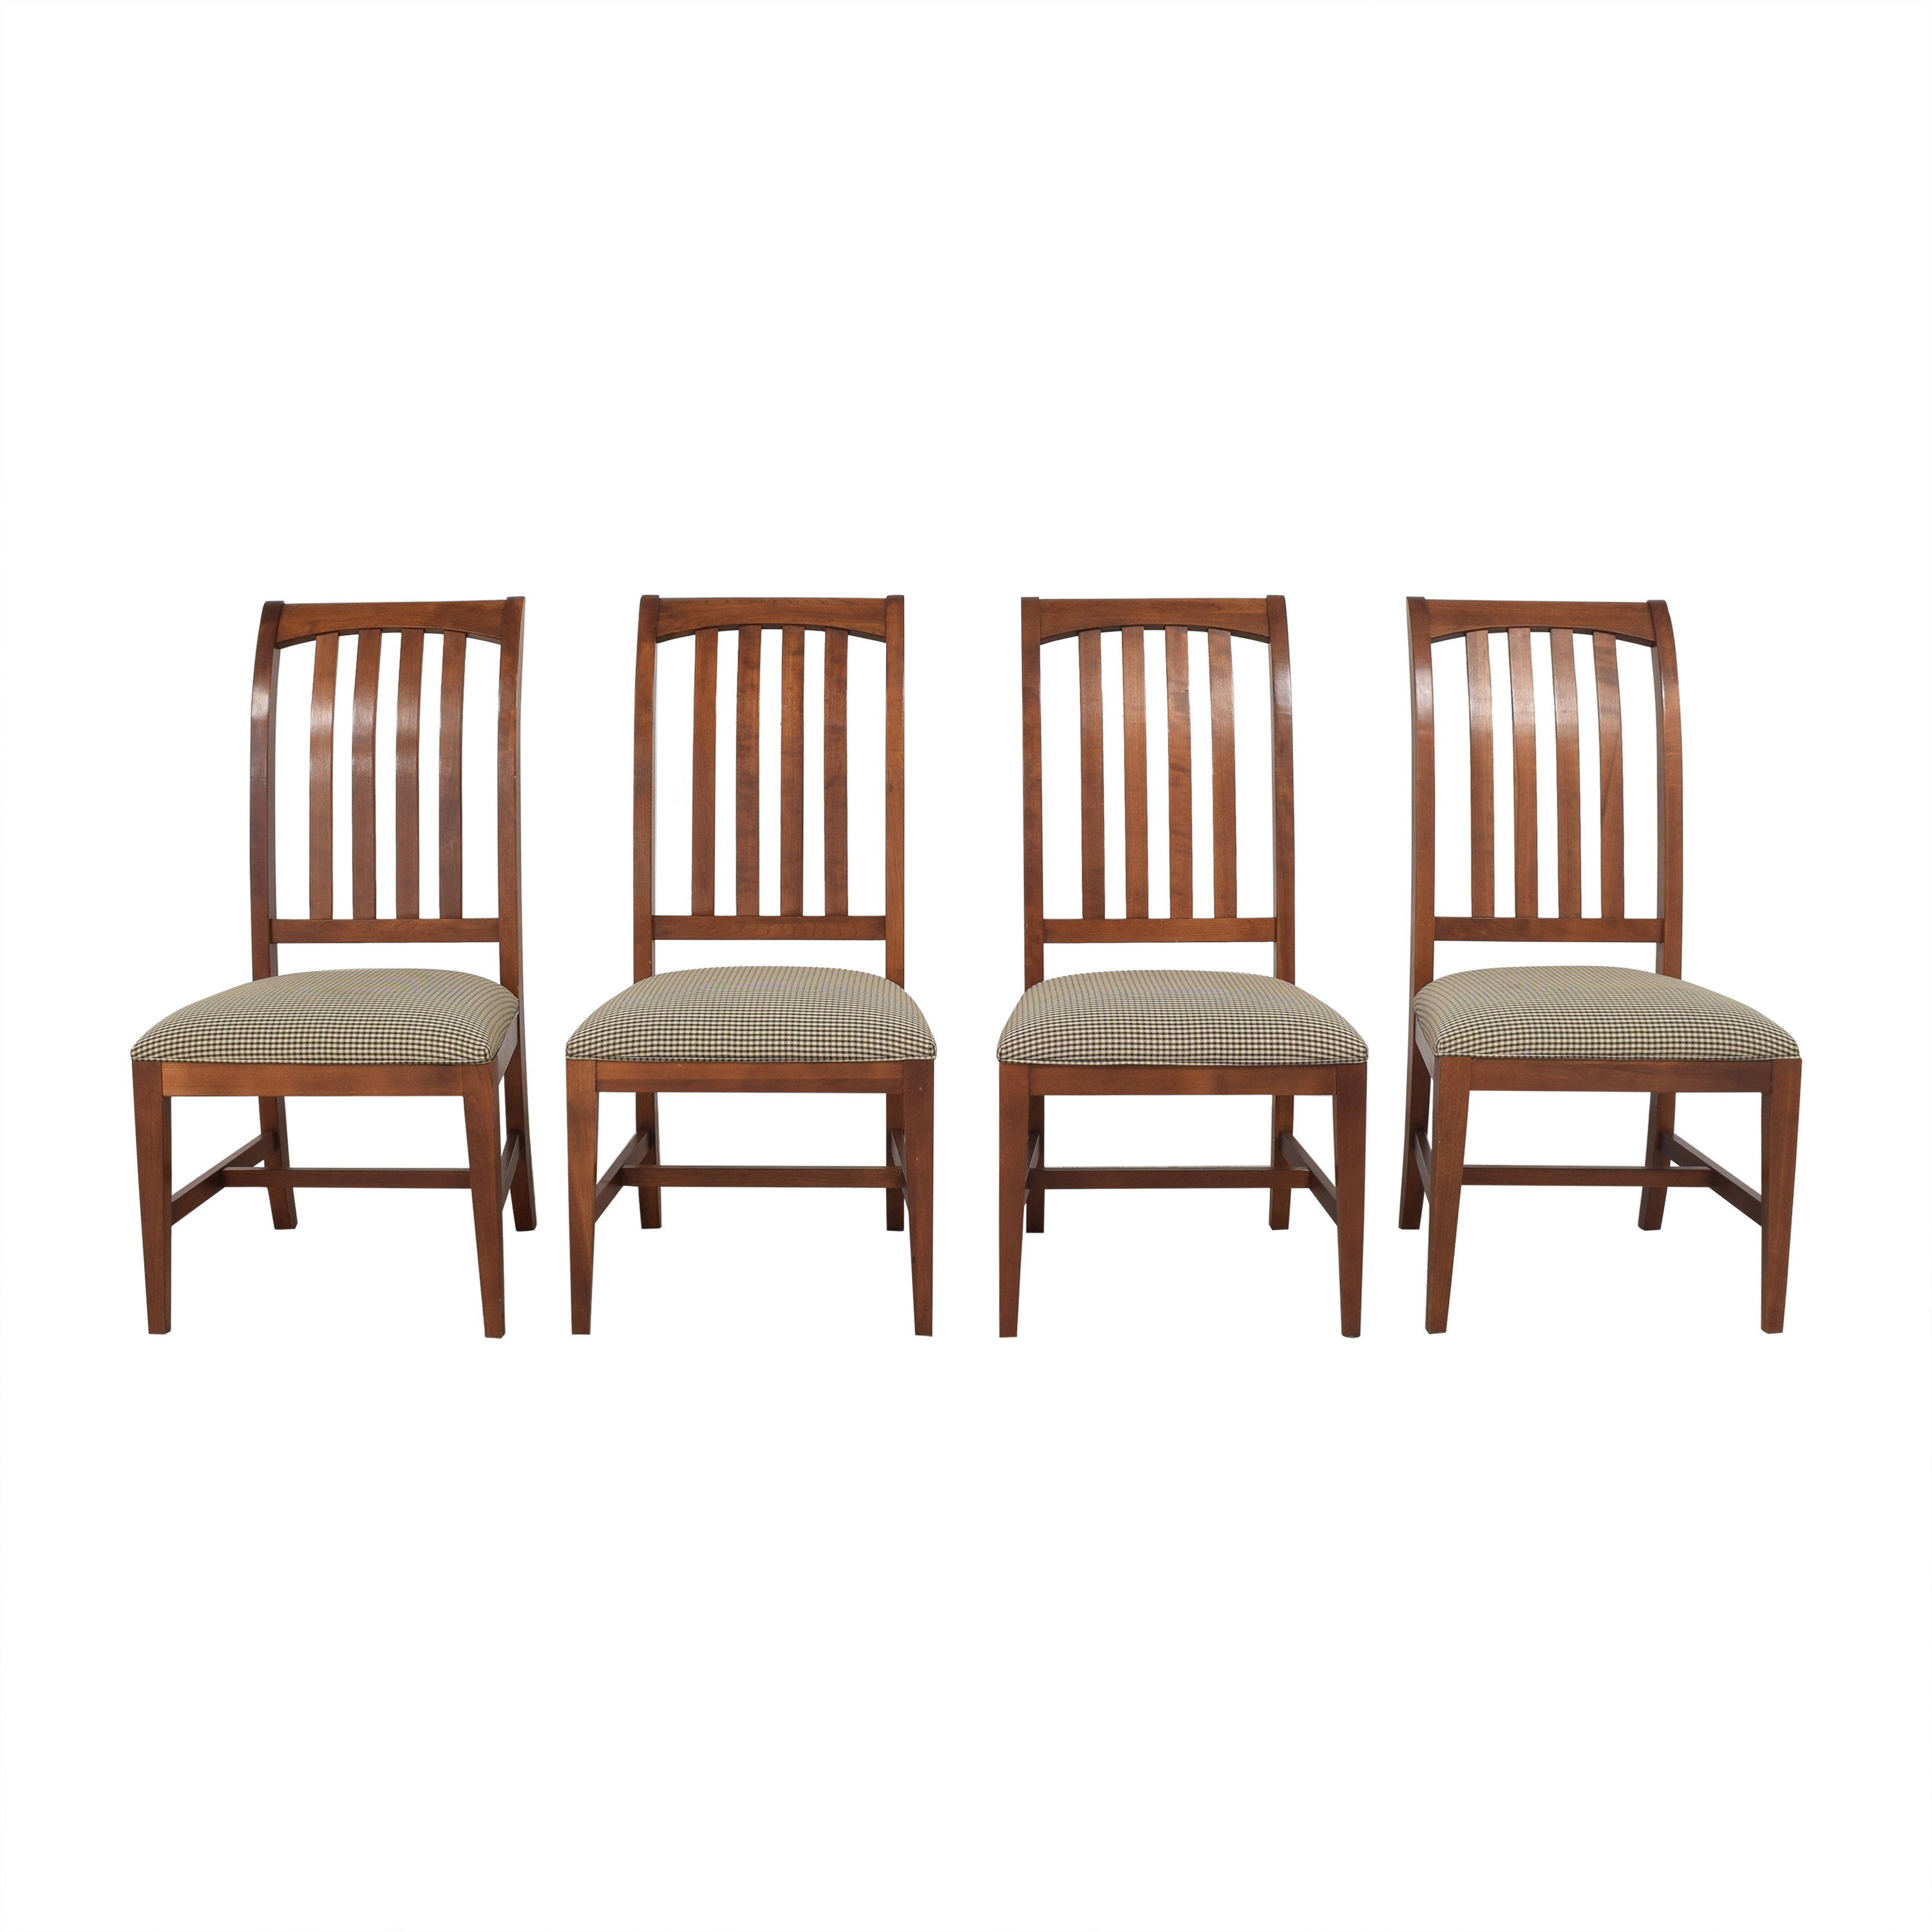 Ethan Allen Ethan Allen American Impressions Dining Chairs used